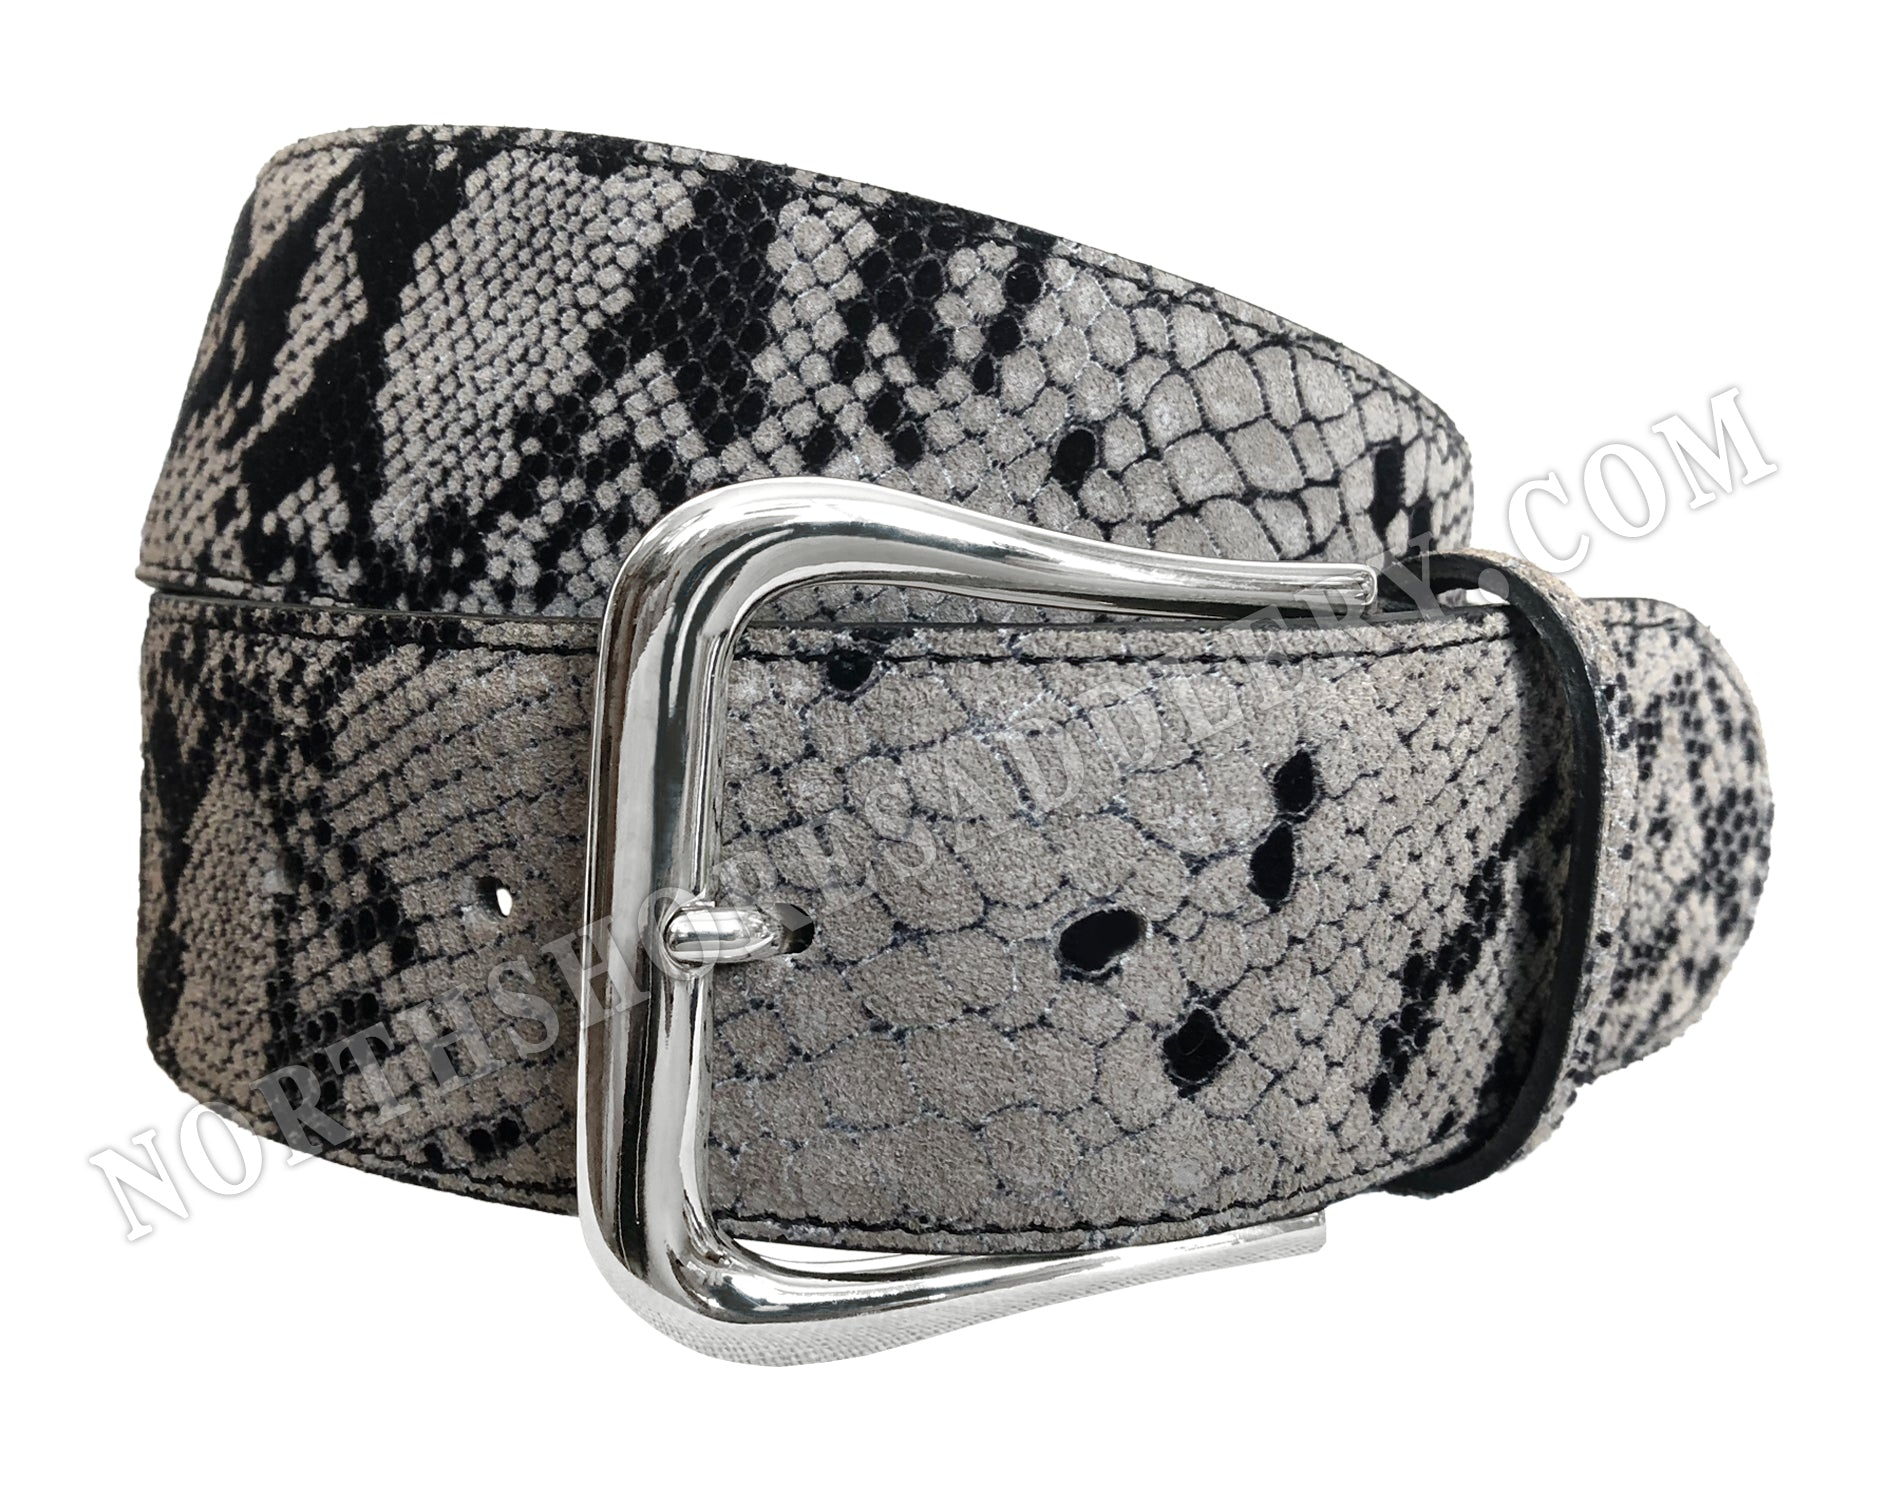 Tailored Sportsman Snake Eyes Belt